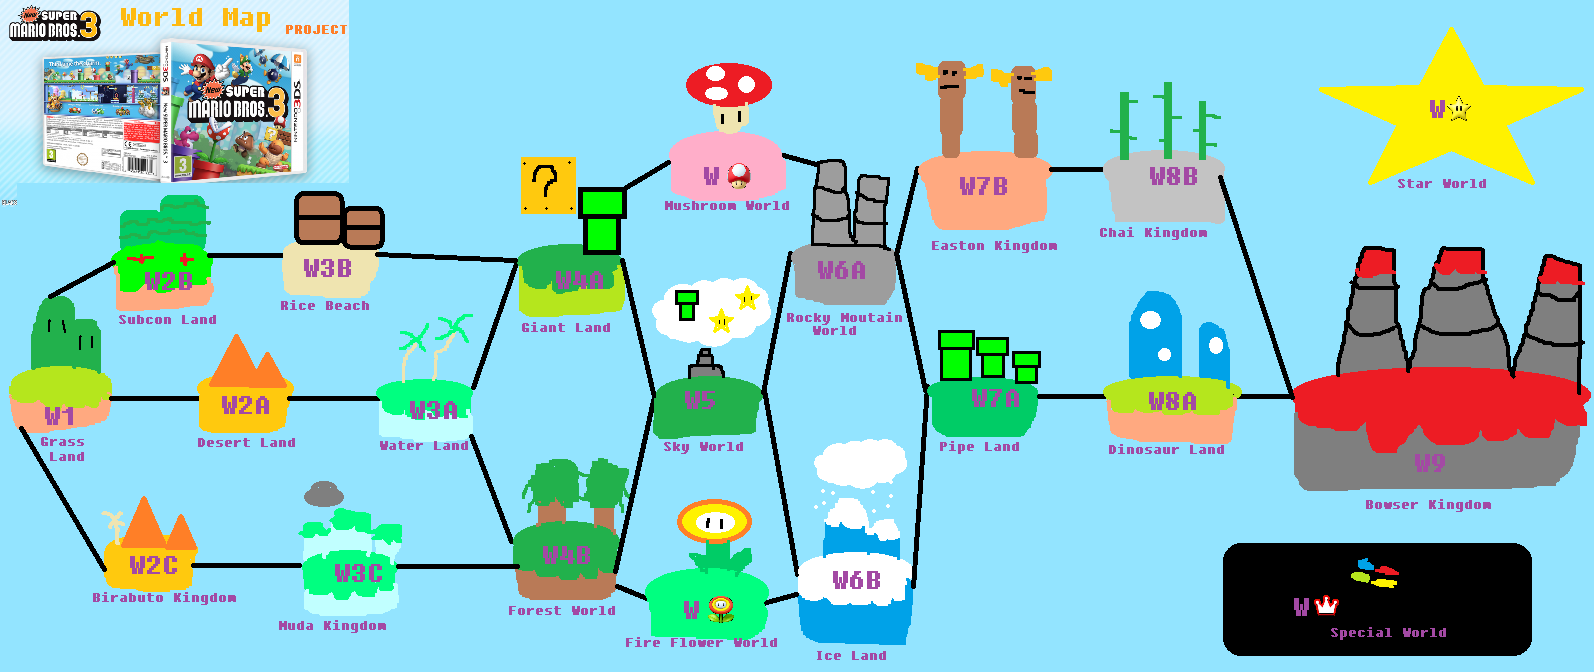 New Super Mario Bros 3 World Map PROJECT by UltimateGamer45 on ...